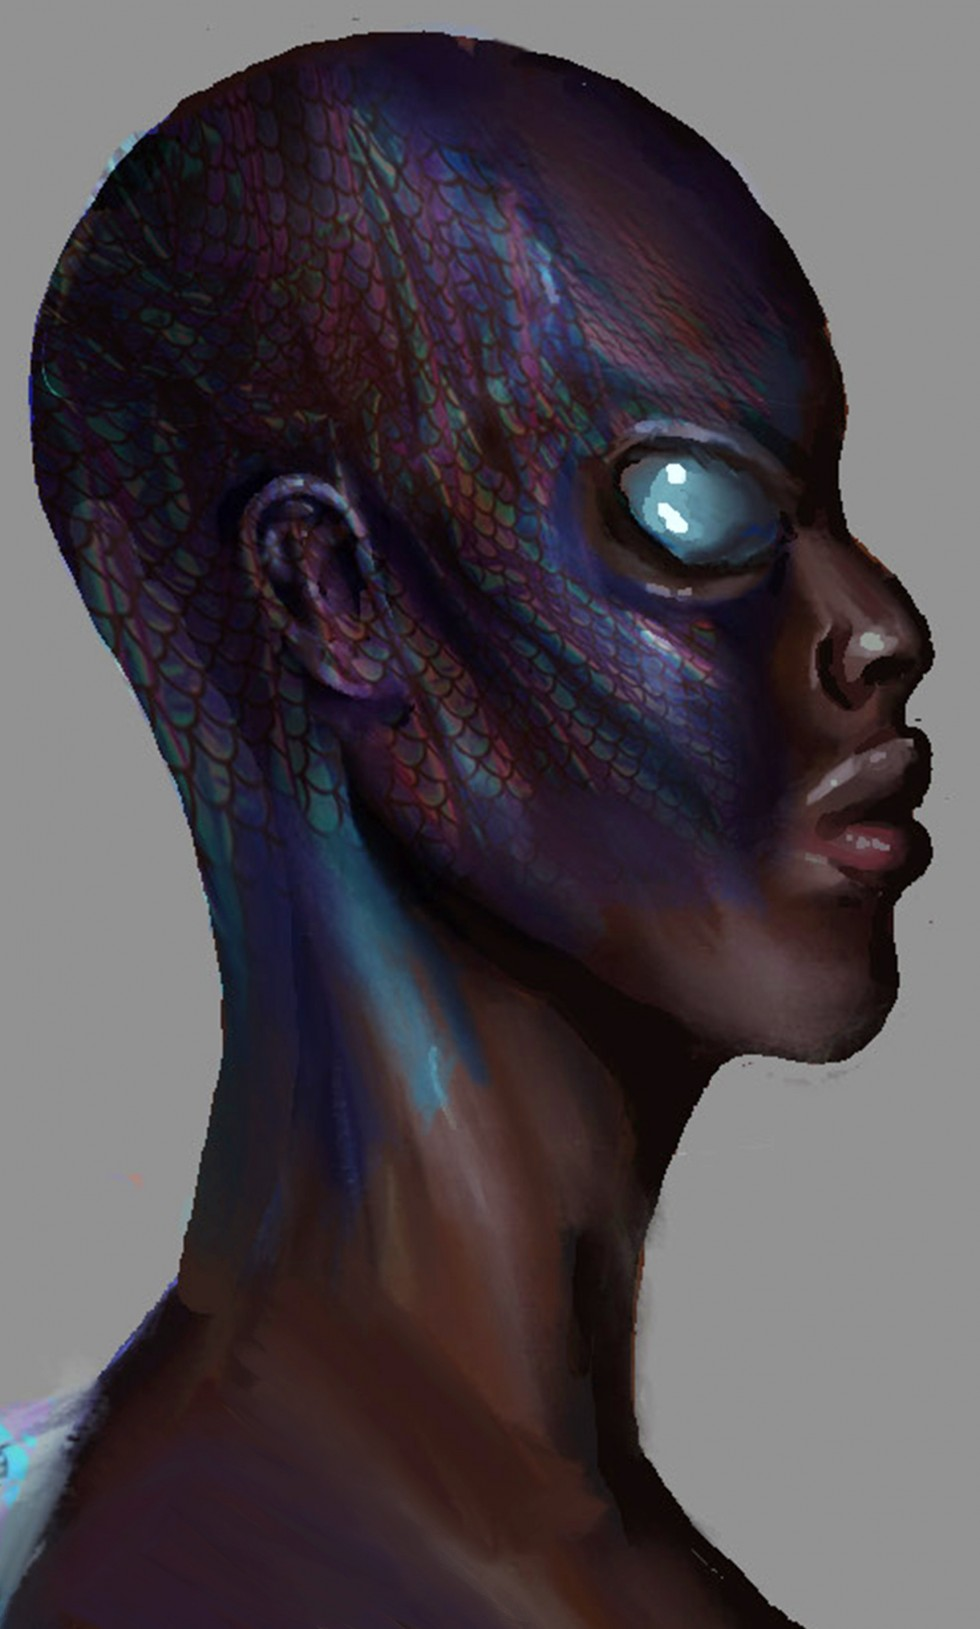 A nude bald black woman with light source coming from between her chest. She has fish eyes and fish patterns in parts of her body.